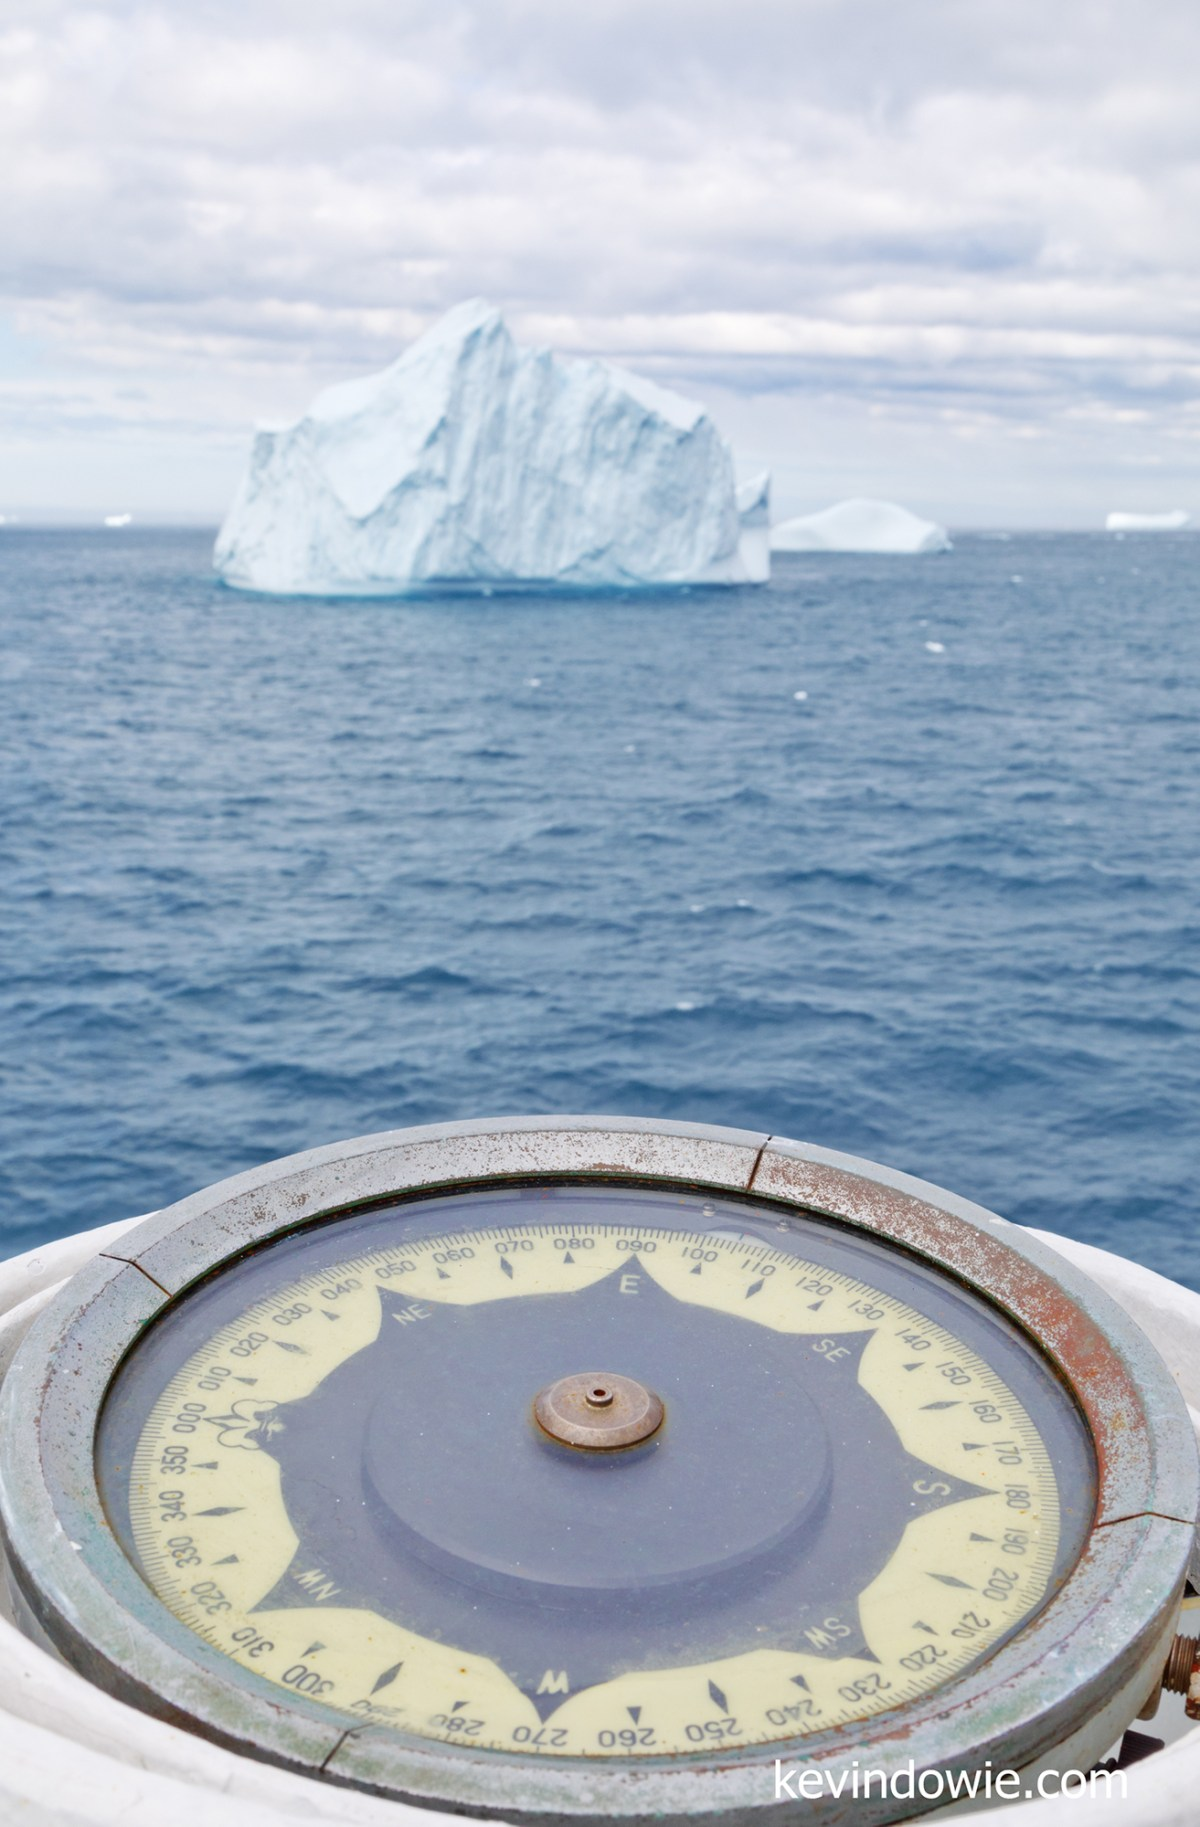 This was not the Titanic and Leo DiCaprio was nowhere to be seen…. lesson learnt! :-)